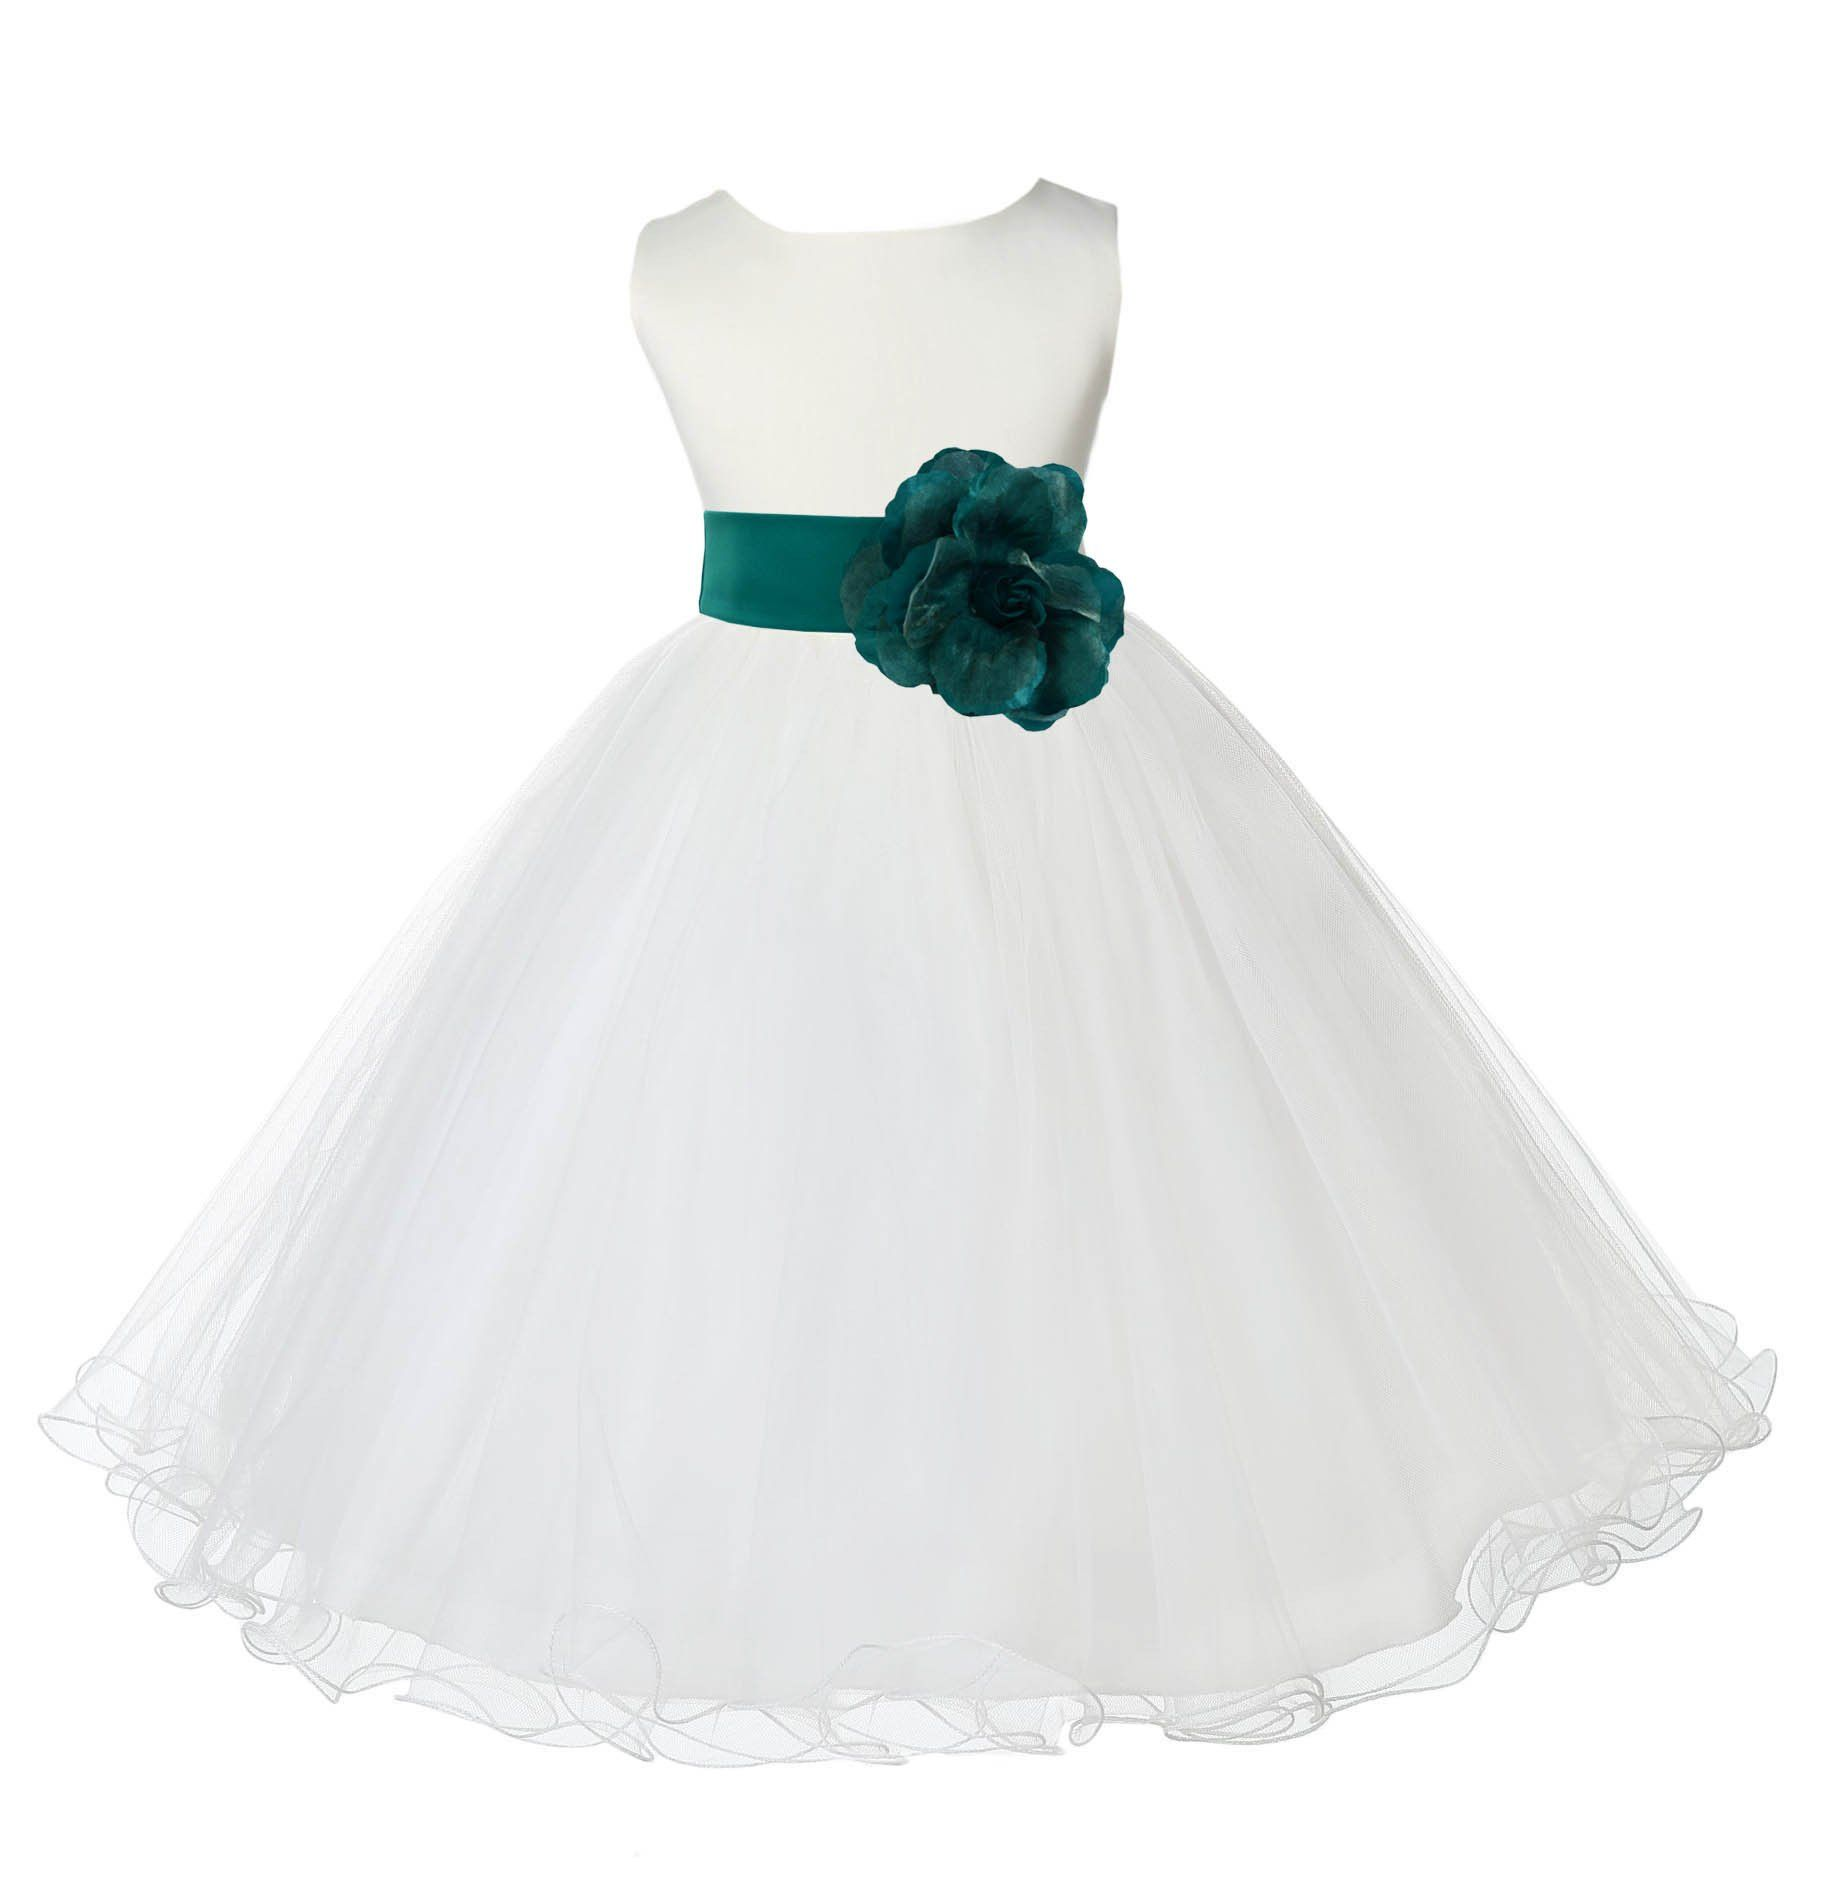 IVORY Flower Girl Dress Wedding Dance Party Formal Recital Graduation Pageant